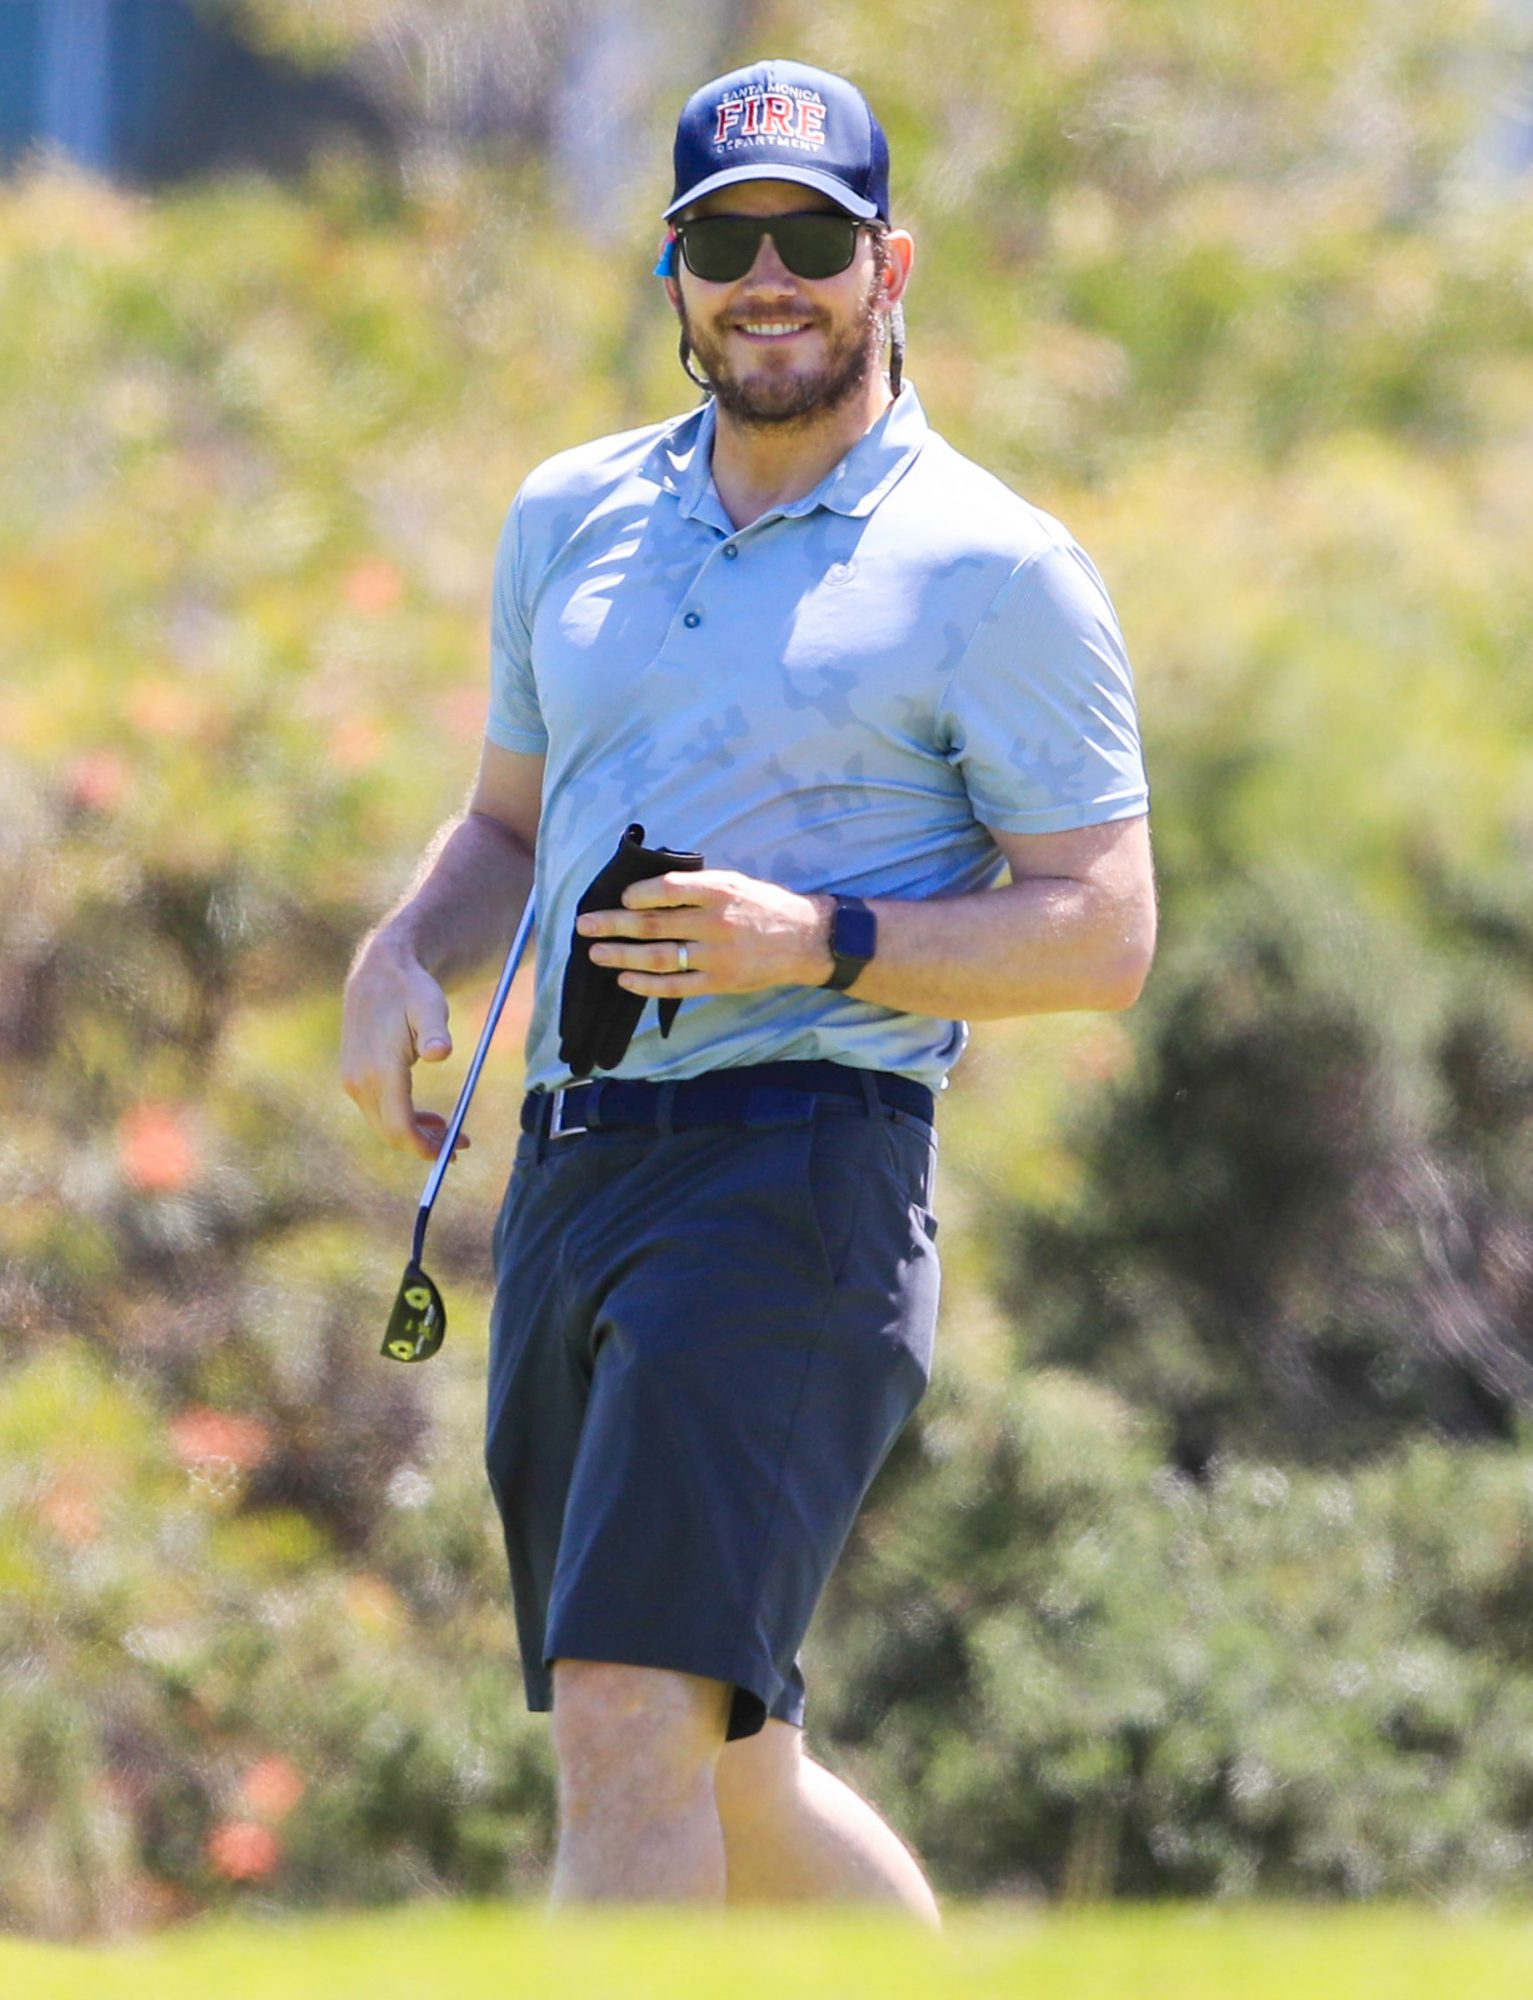 Chris Pratt Having A TEE-Riffic Time In Sydney! The Guardians Of The Galaxy Star Was Spotted Teeing Off For A Round Of Golf In Sydney